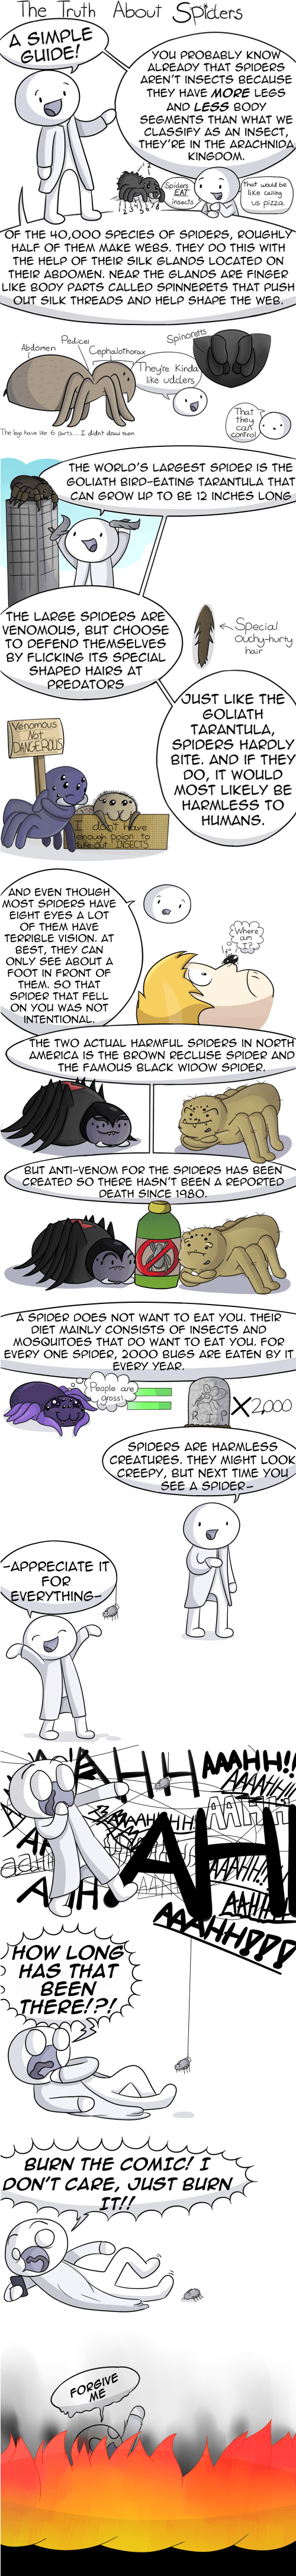 spiders science web comics - 7995539712